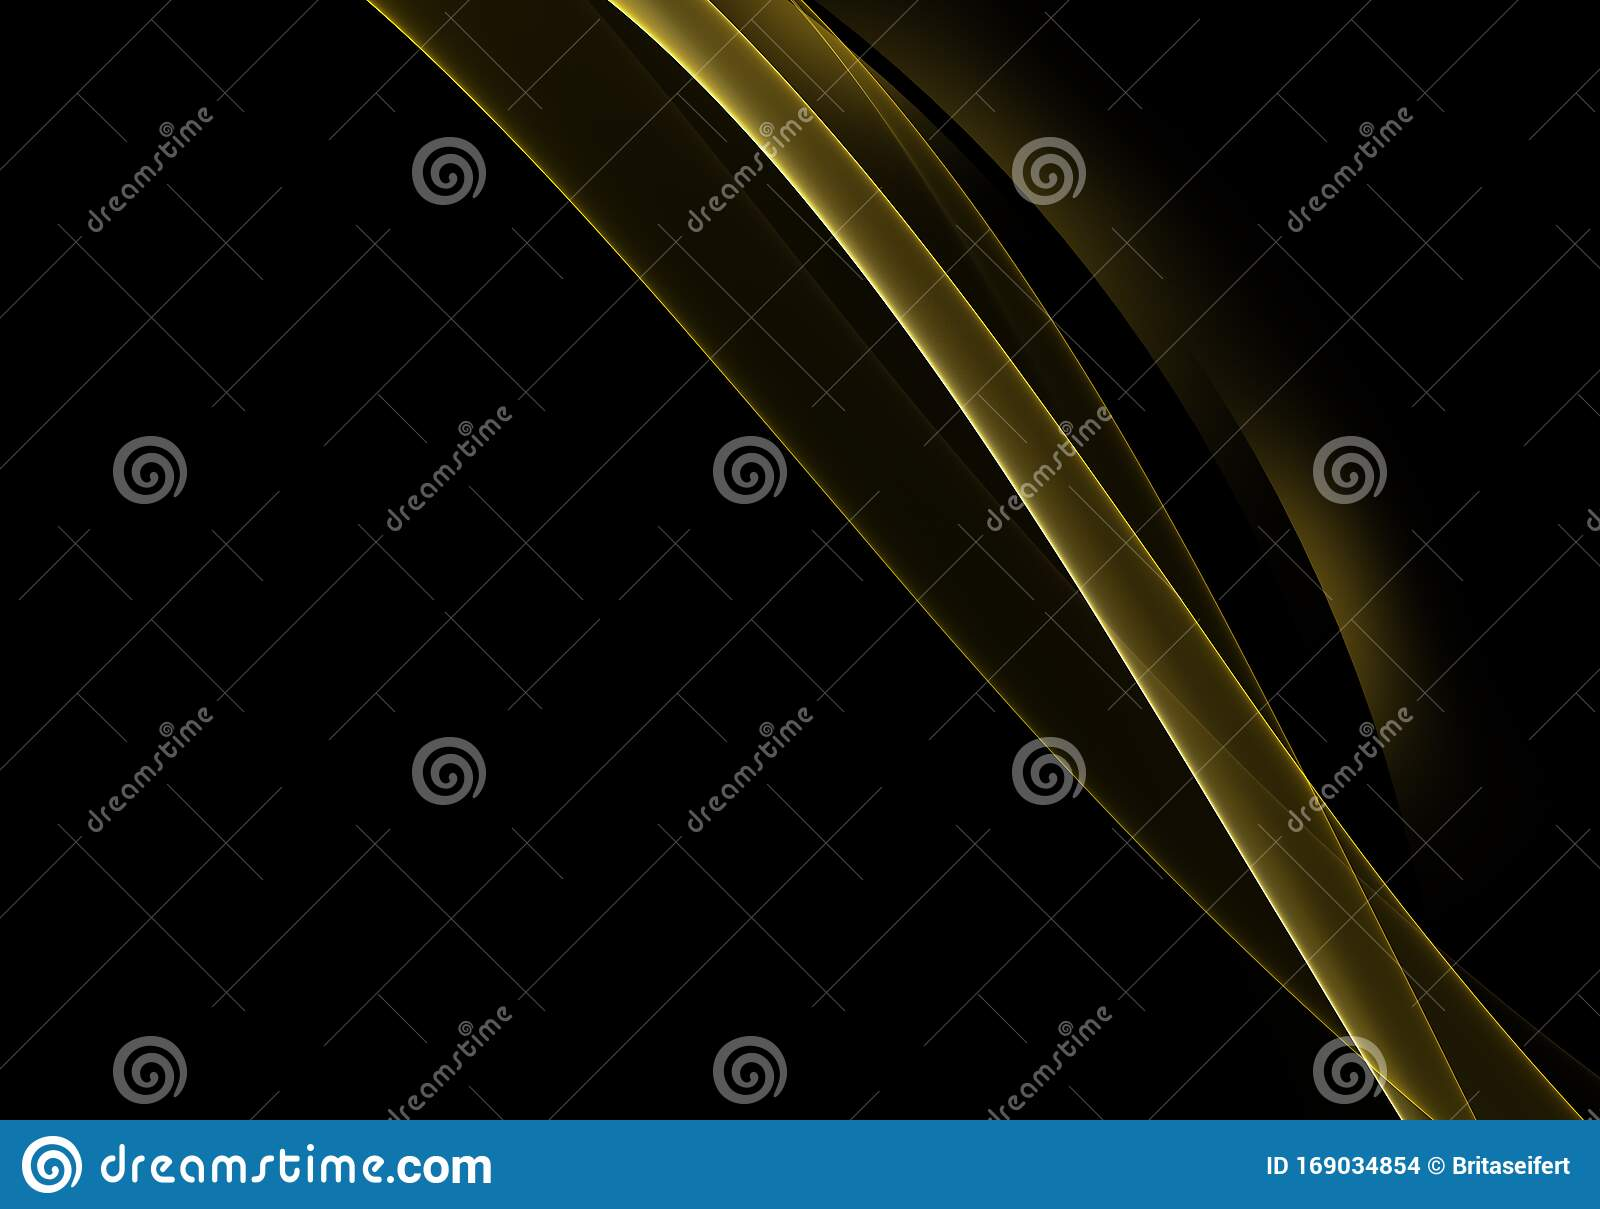 Abstract Background Waves Black And Golden Yellow Abstract